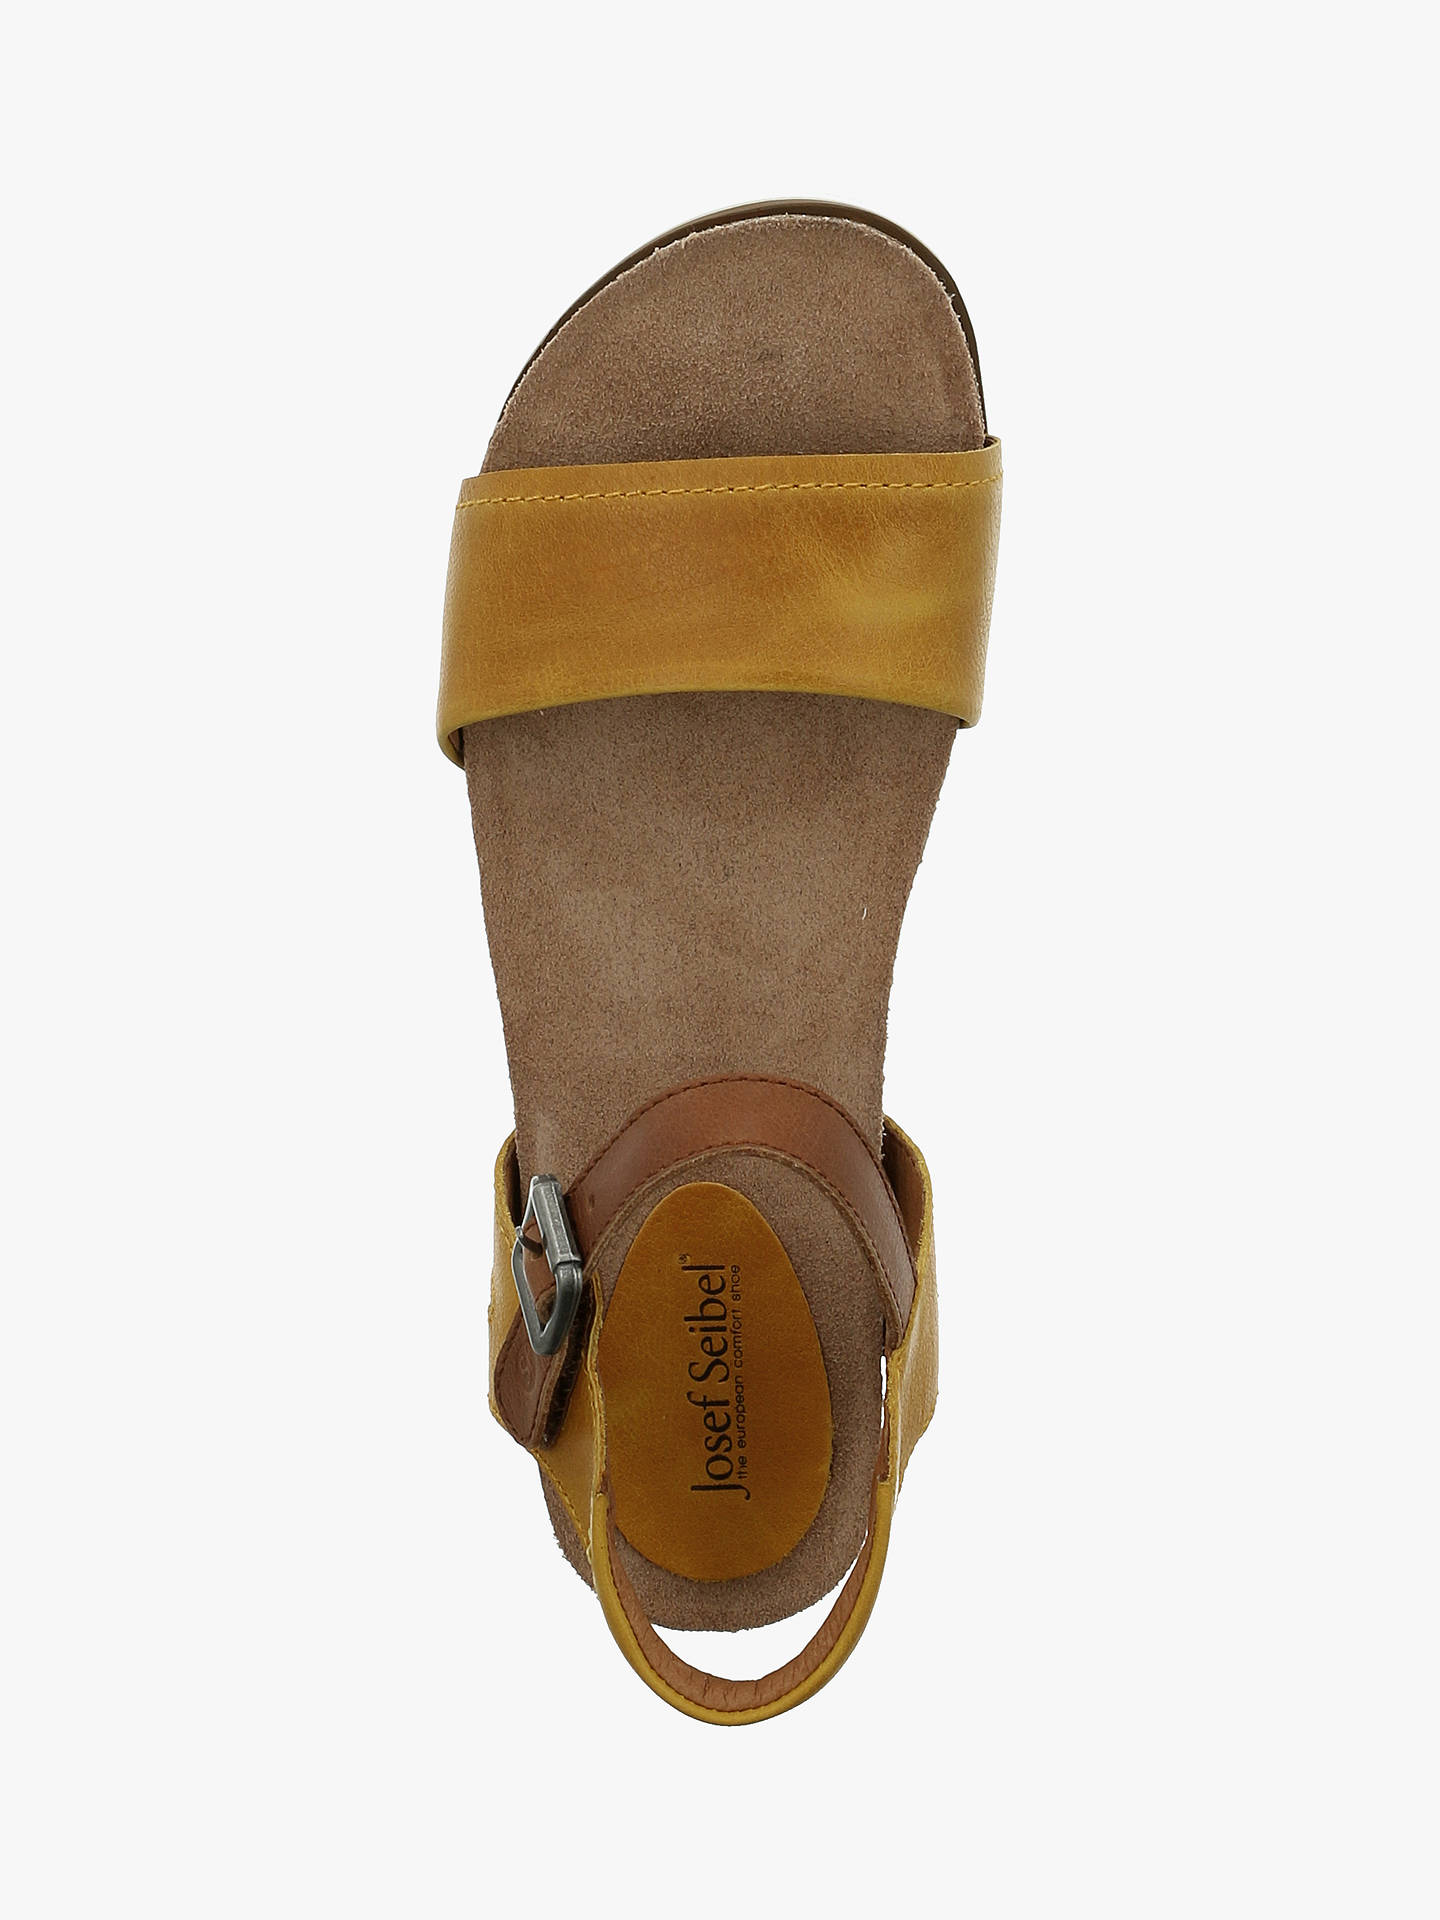 Buy Josef Seibel Clea 01 Strap Sandals, Gelb Kombi Leather, 4 Online at johnlewis.com